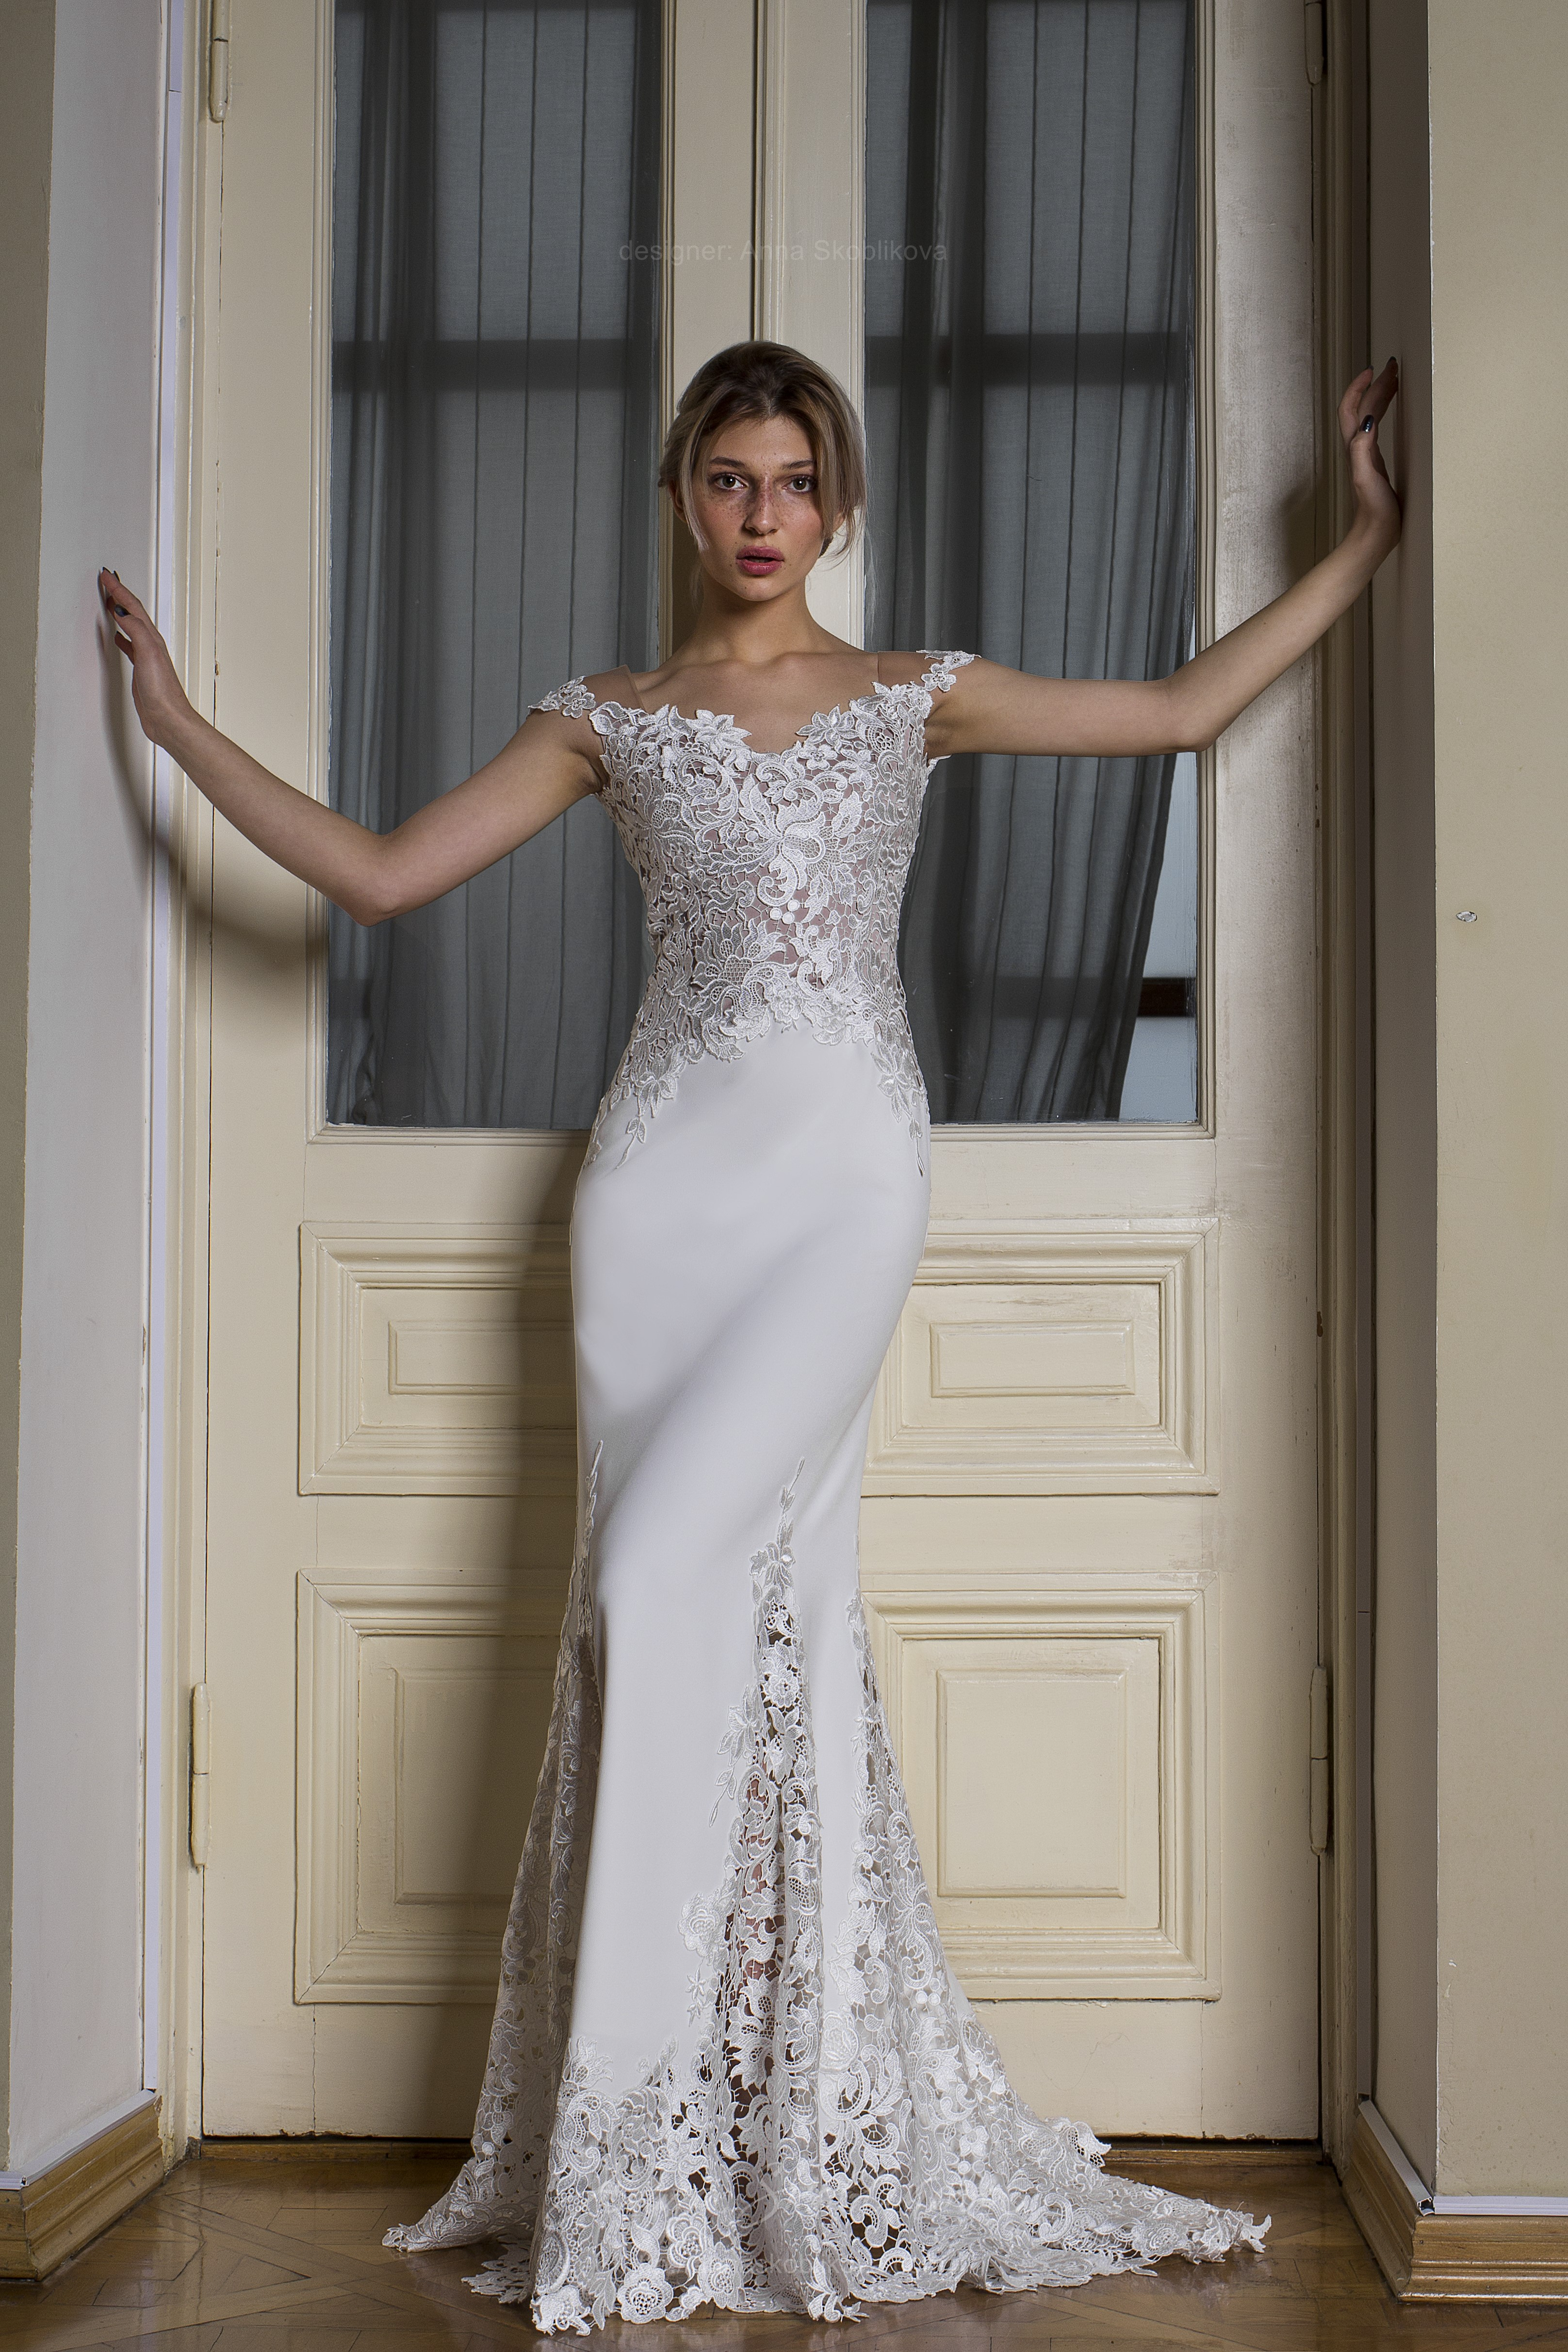 Boho wedding dress Alexandra - features the delicate tracery macramé ...